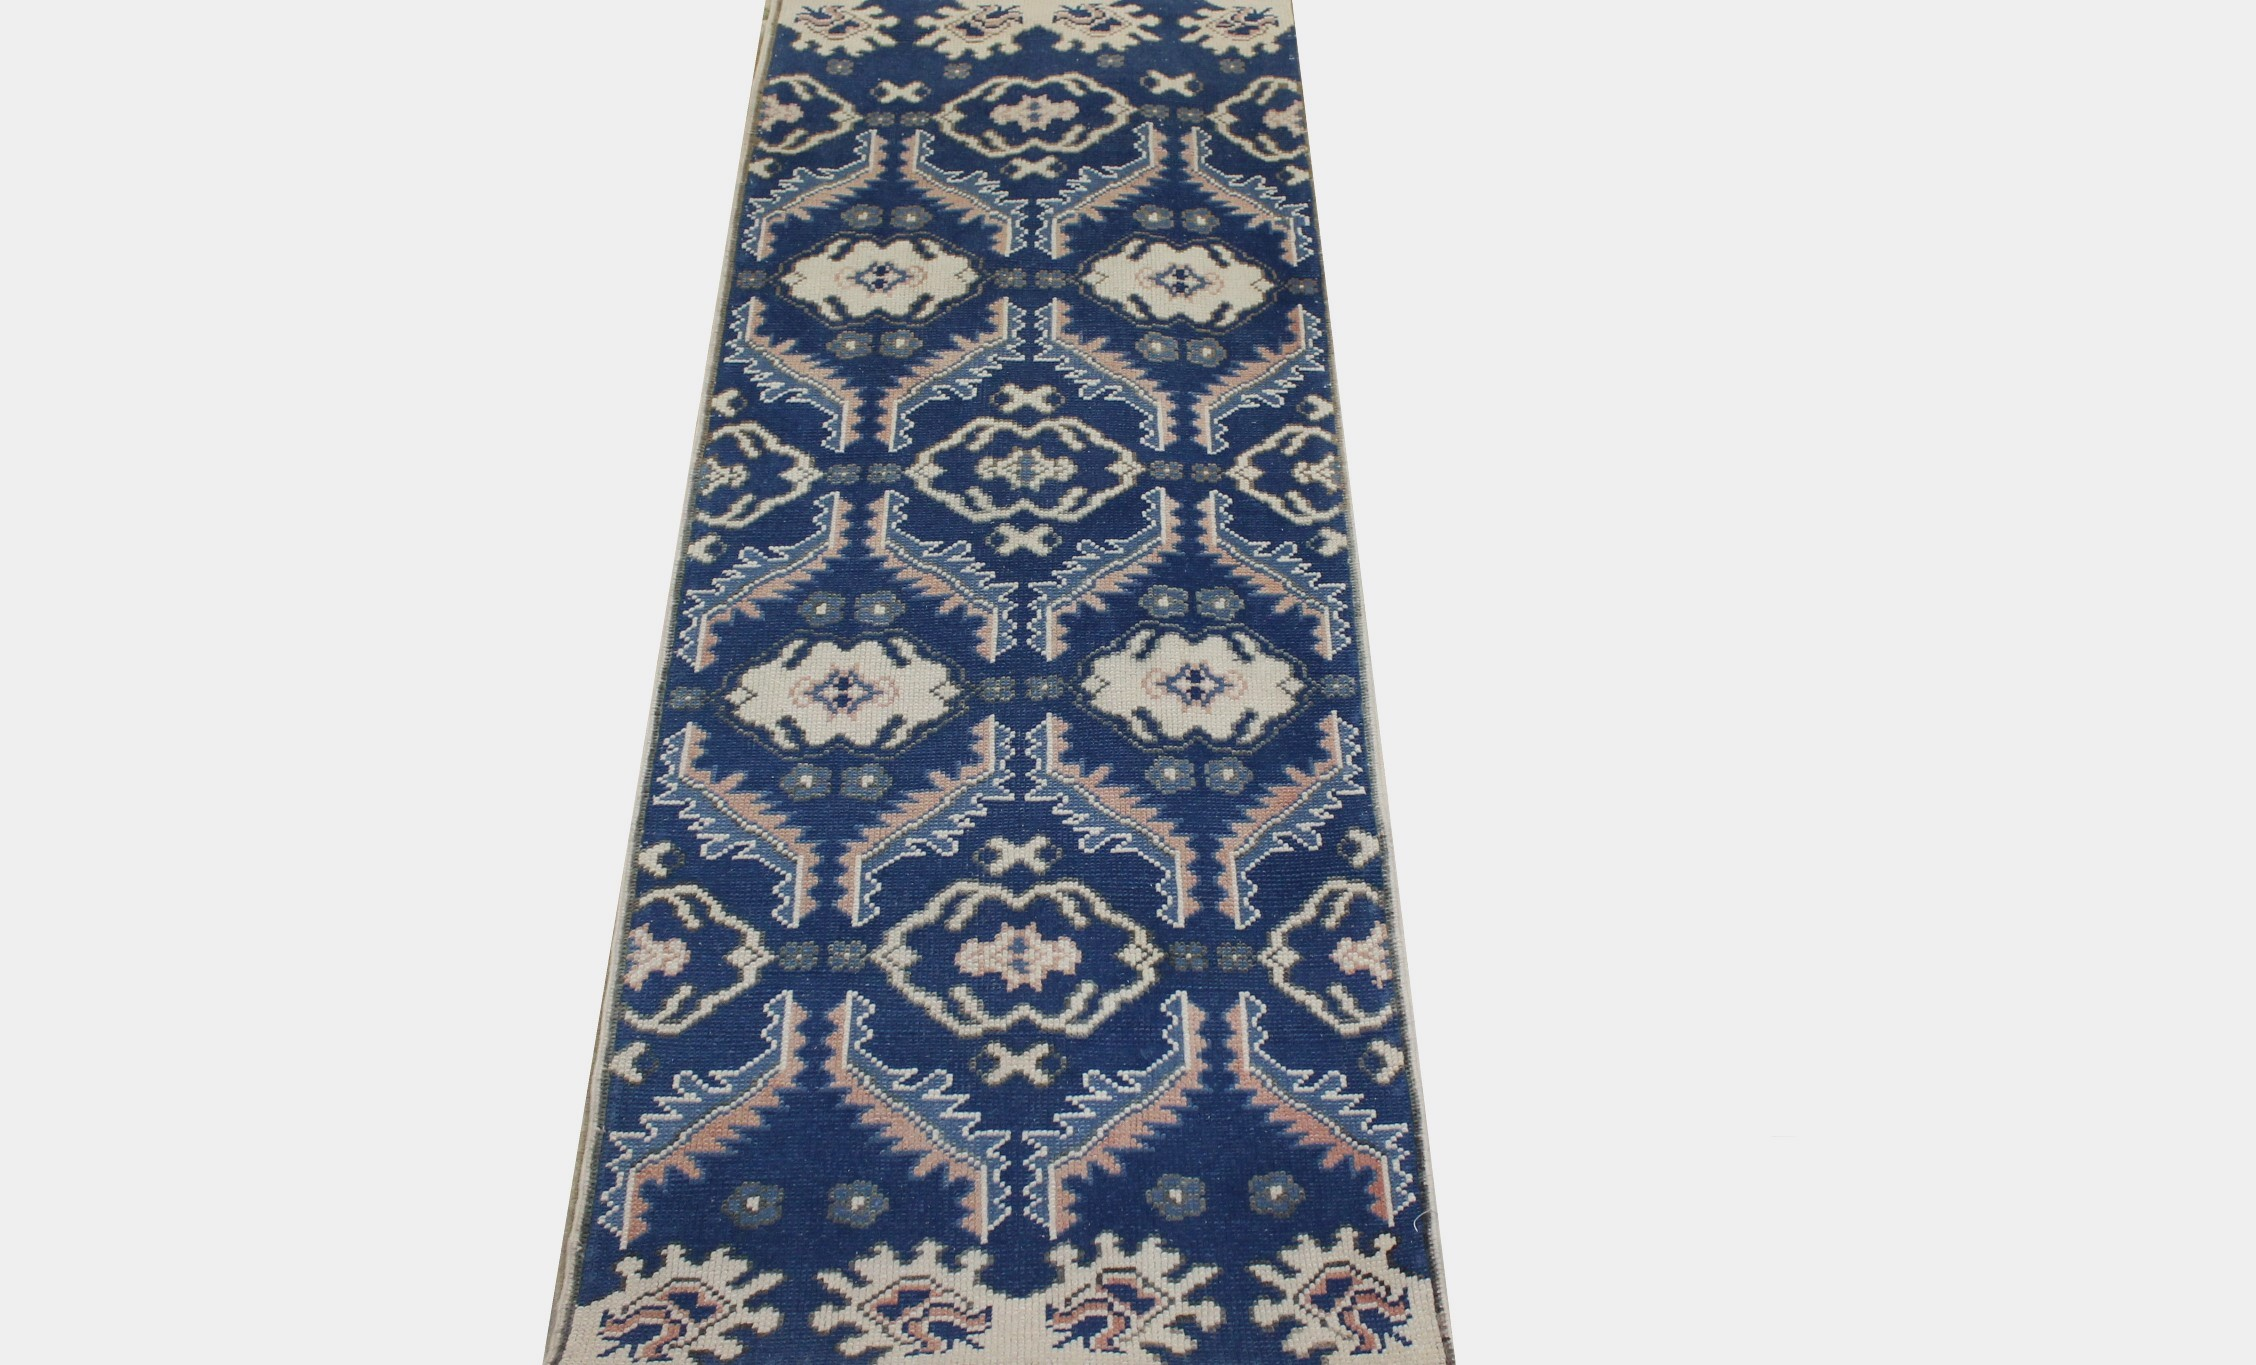 6 ft. Runner Oushak Hand Knotted Wool Area Rug - MR023465